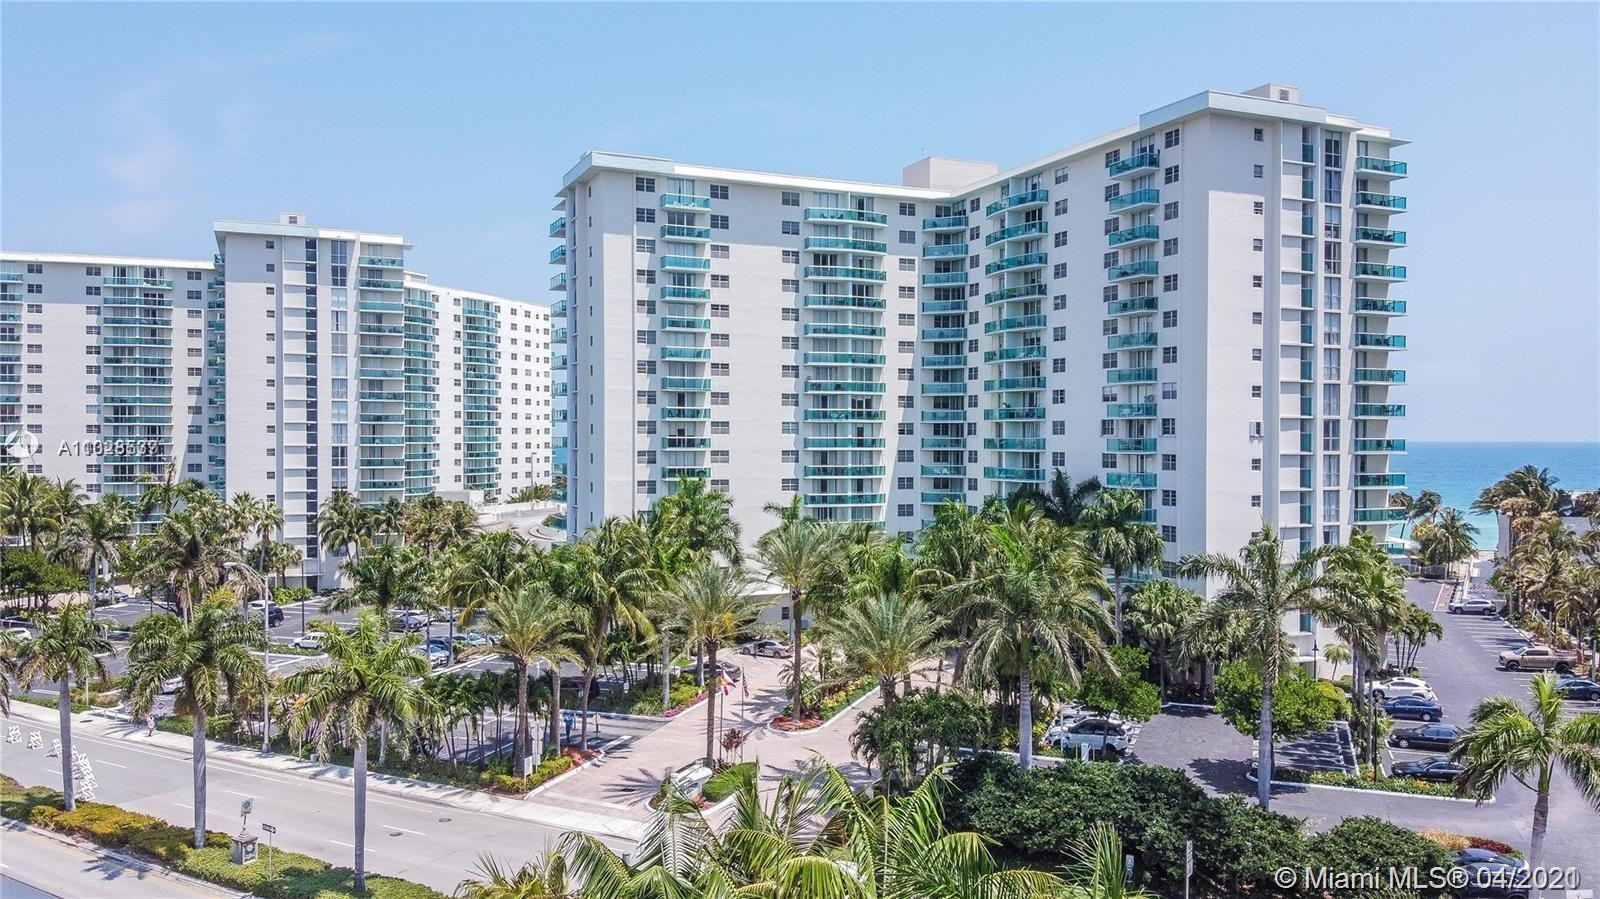 MOVE-IN READY STUNNING OCEAN VIEW, SHINE CERAMIC FLOOR THROUGHOUT, GLASS BALCONY, AMENITIES 2 POOL,